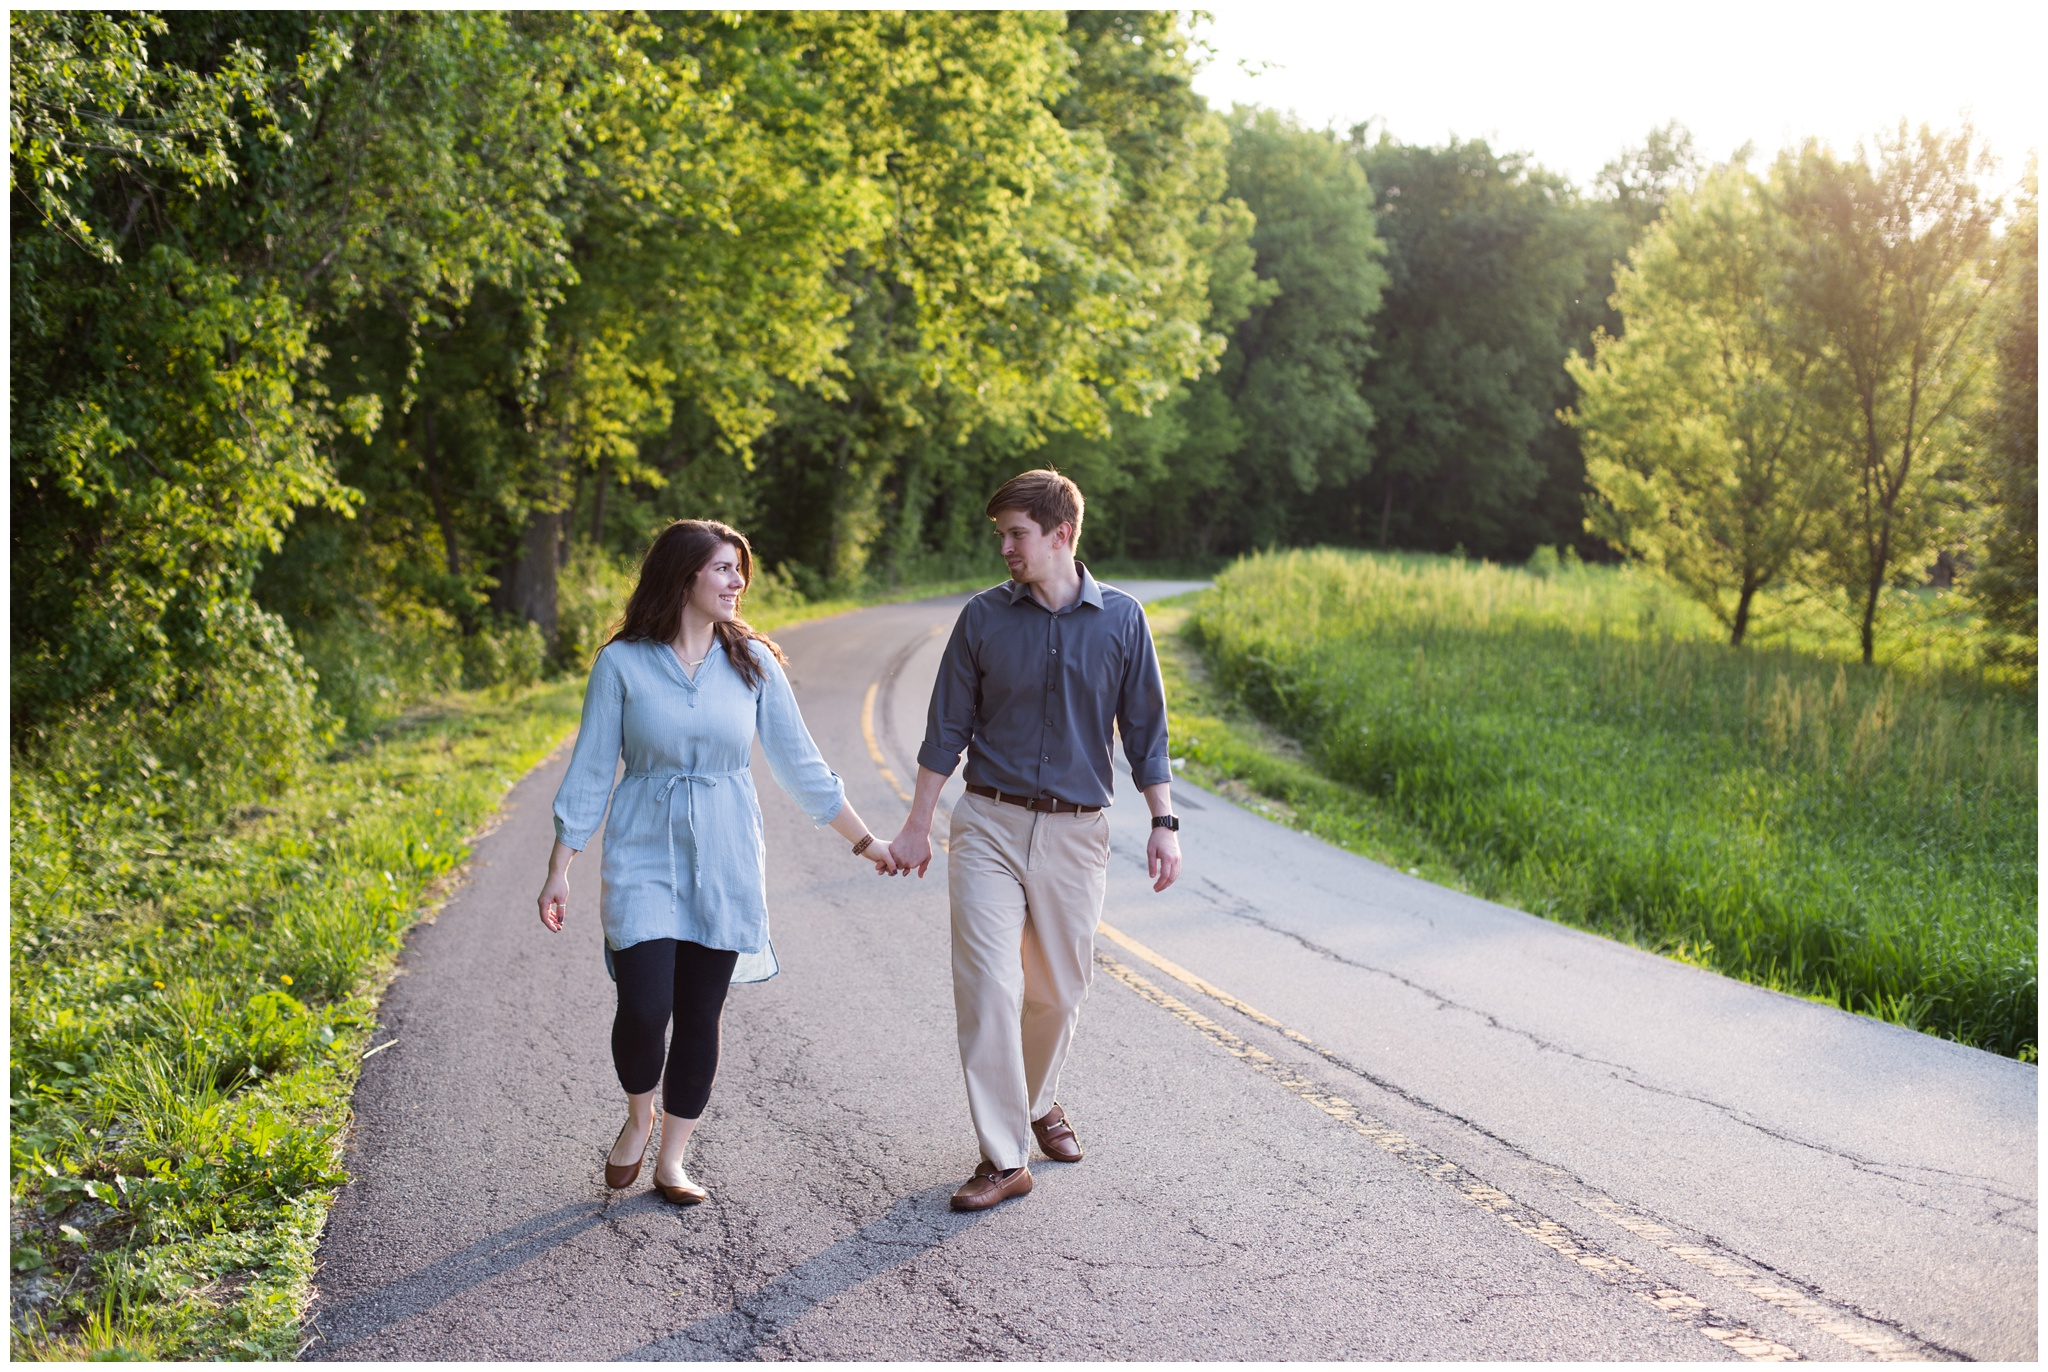 engagement session at Potters Bridge Park in Noblesville Indiana